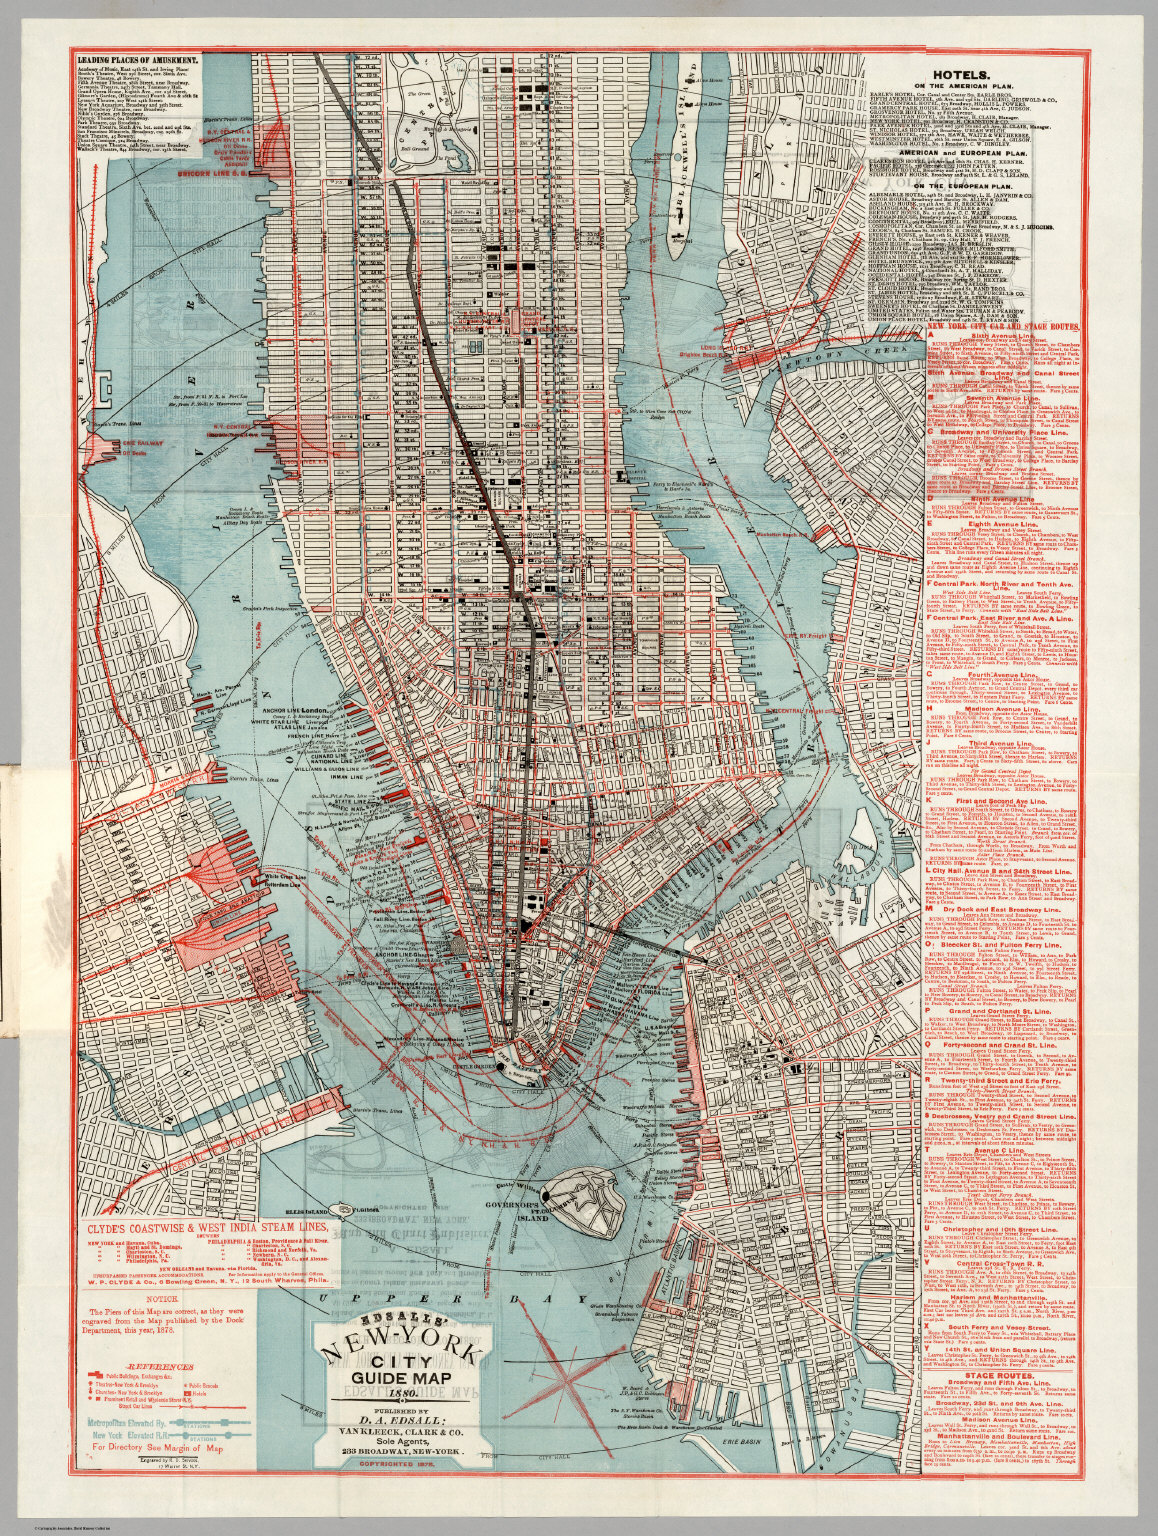 NewYork City Guide Map  David Rumsey Historical Map Collection